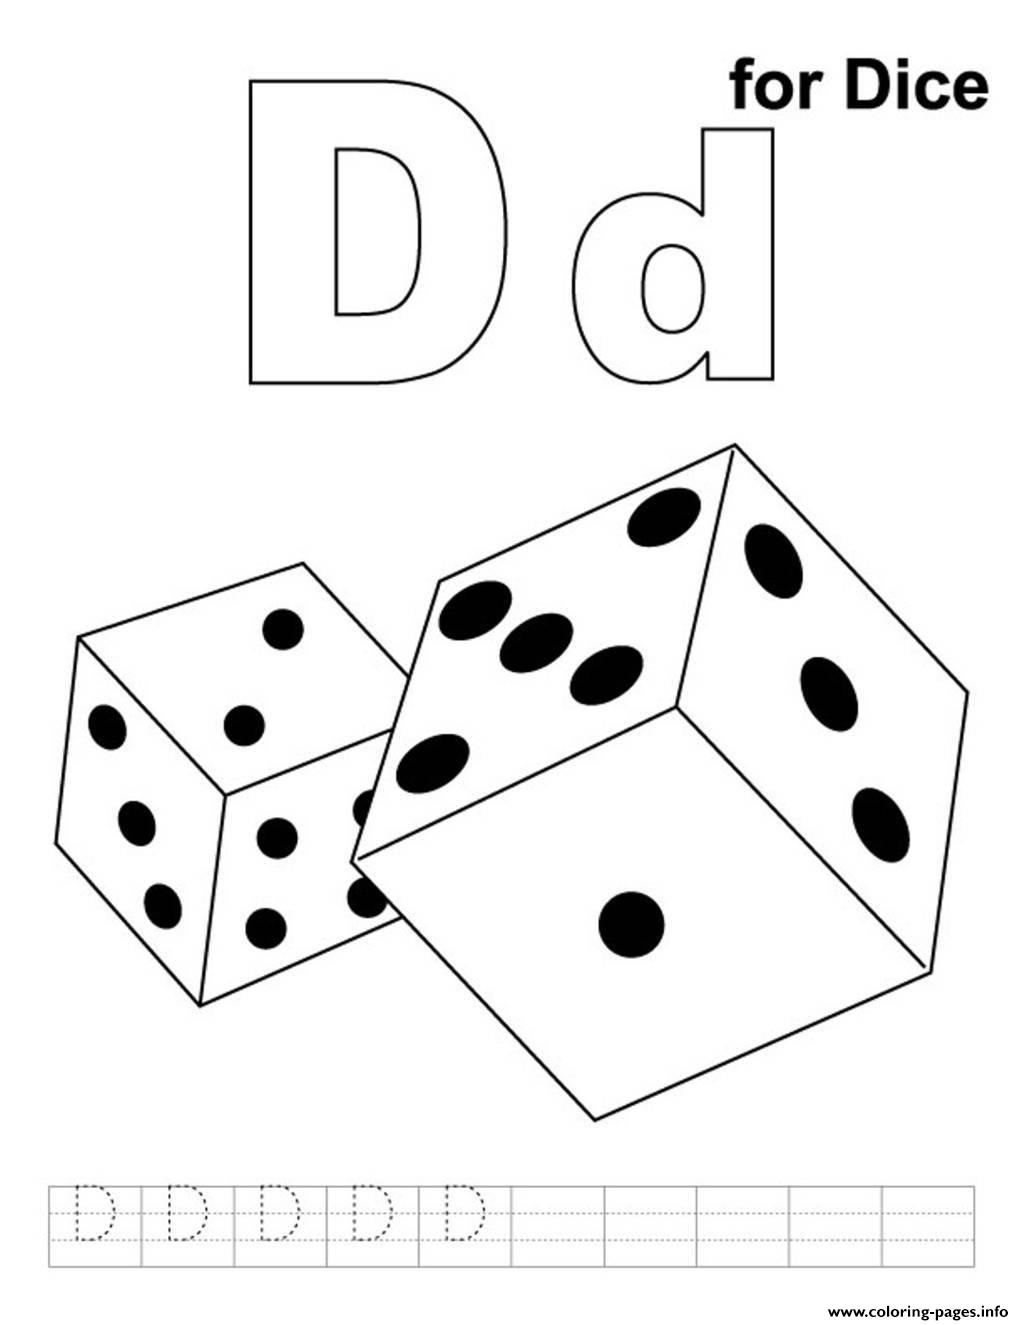 dice print dice coloring pages dice print